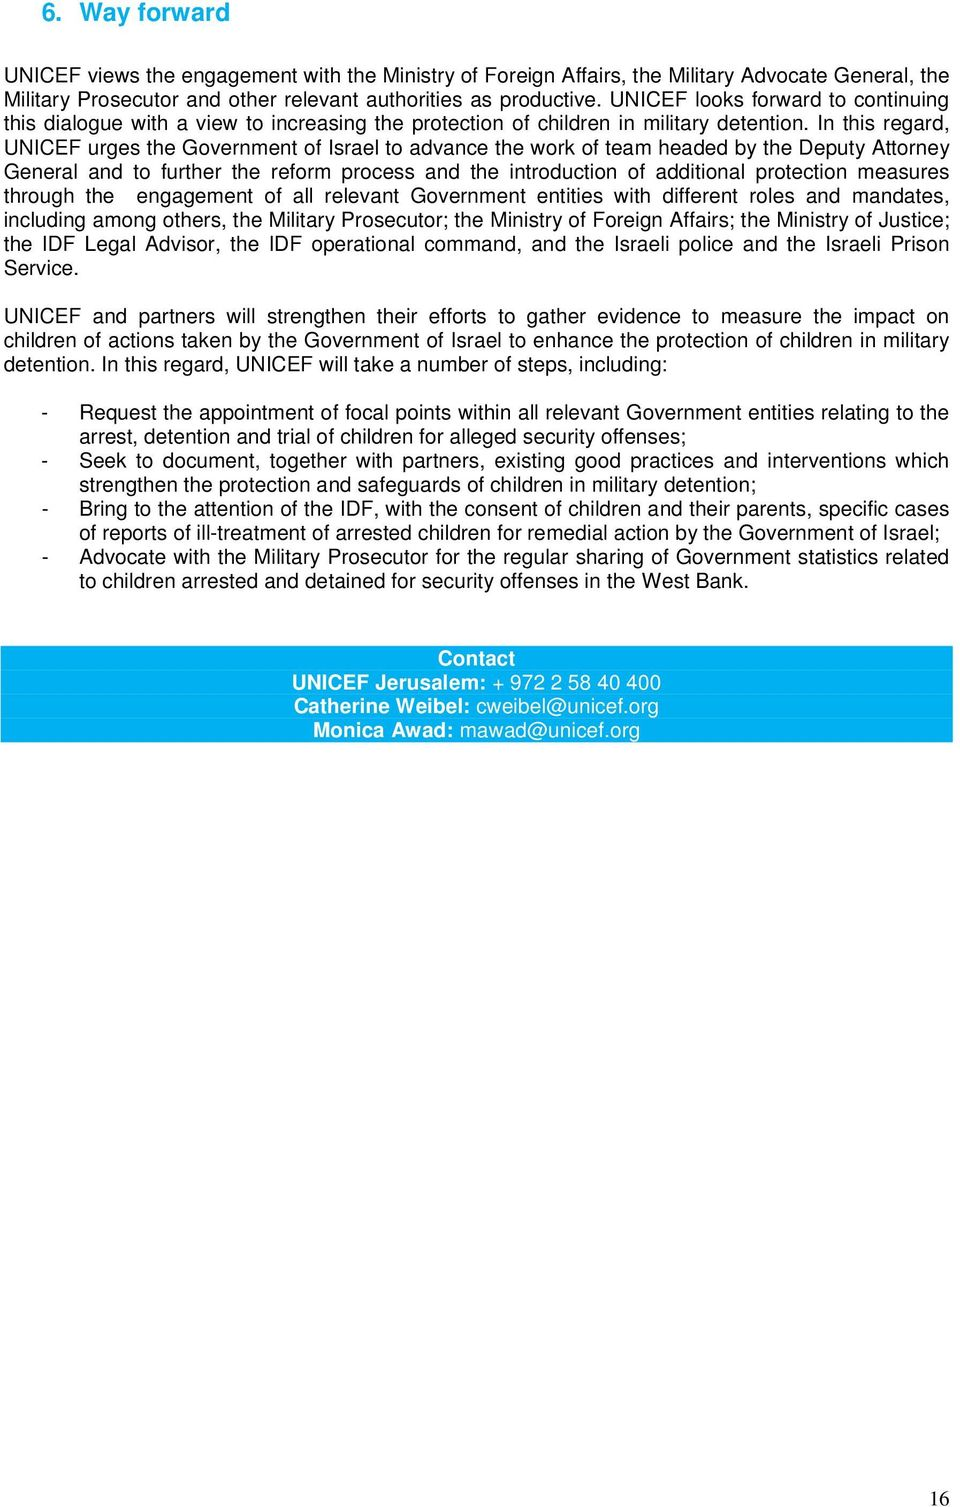 In this regard, UNICEF urges the Government of Israel to advance the work of team headed by the Deputy Attorney General and to further the reform process and the introduction of additional protection